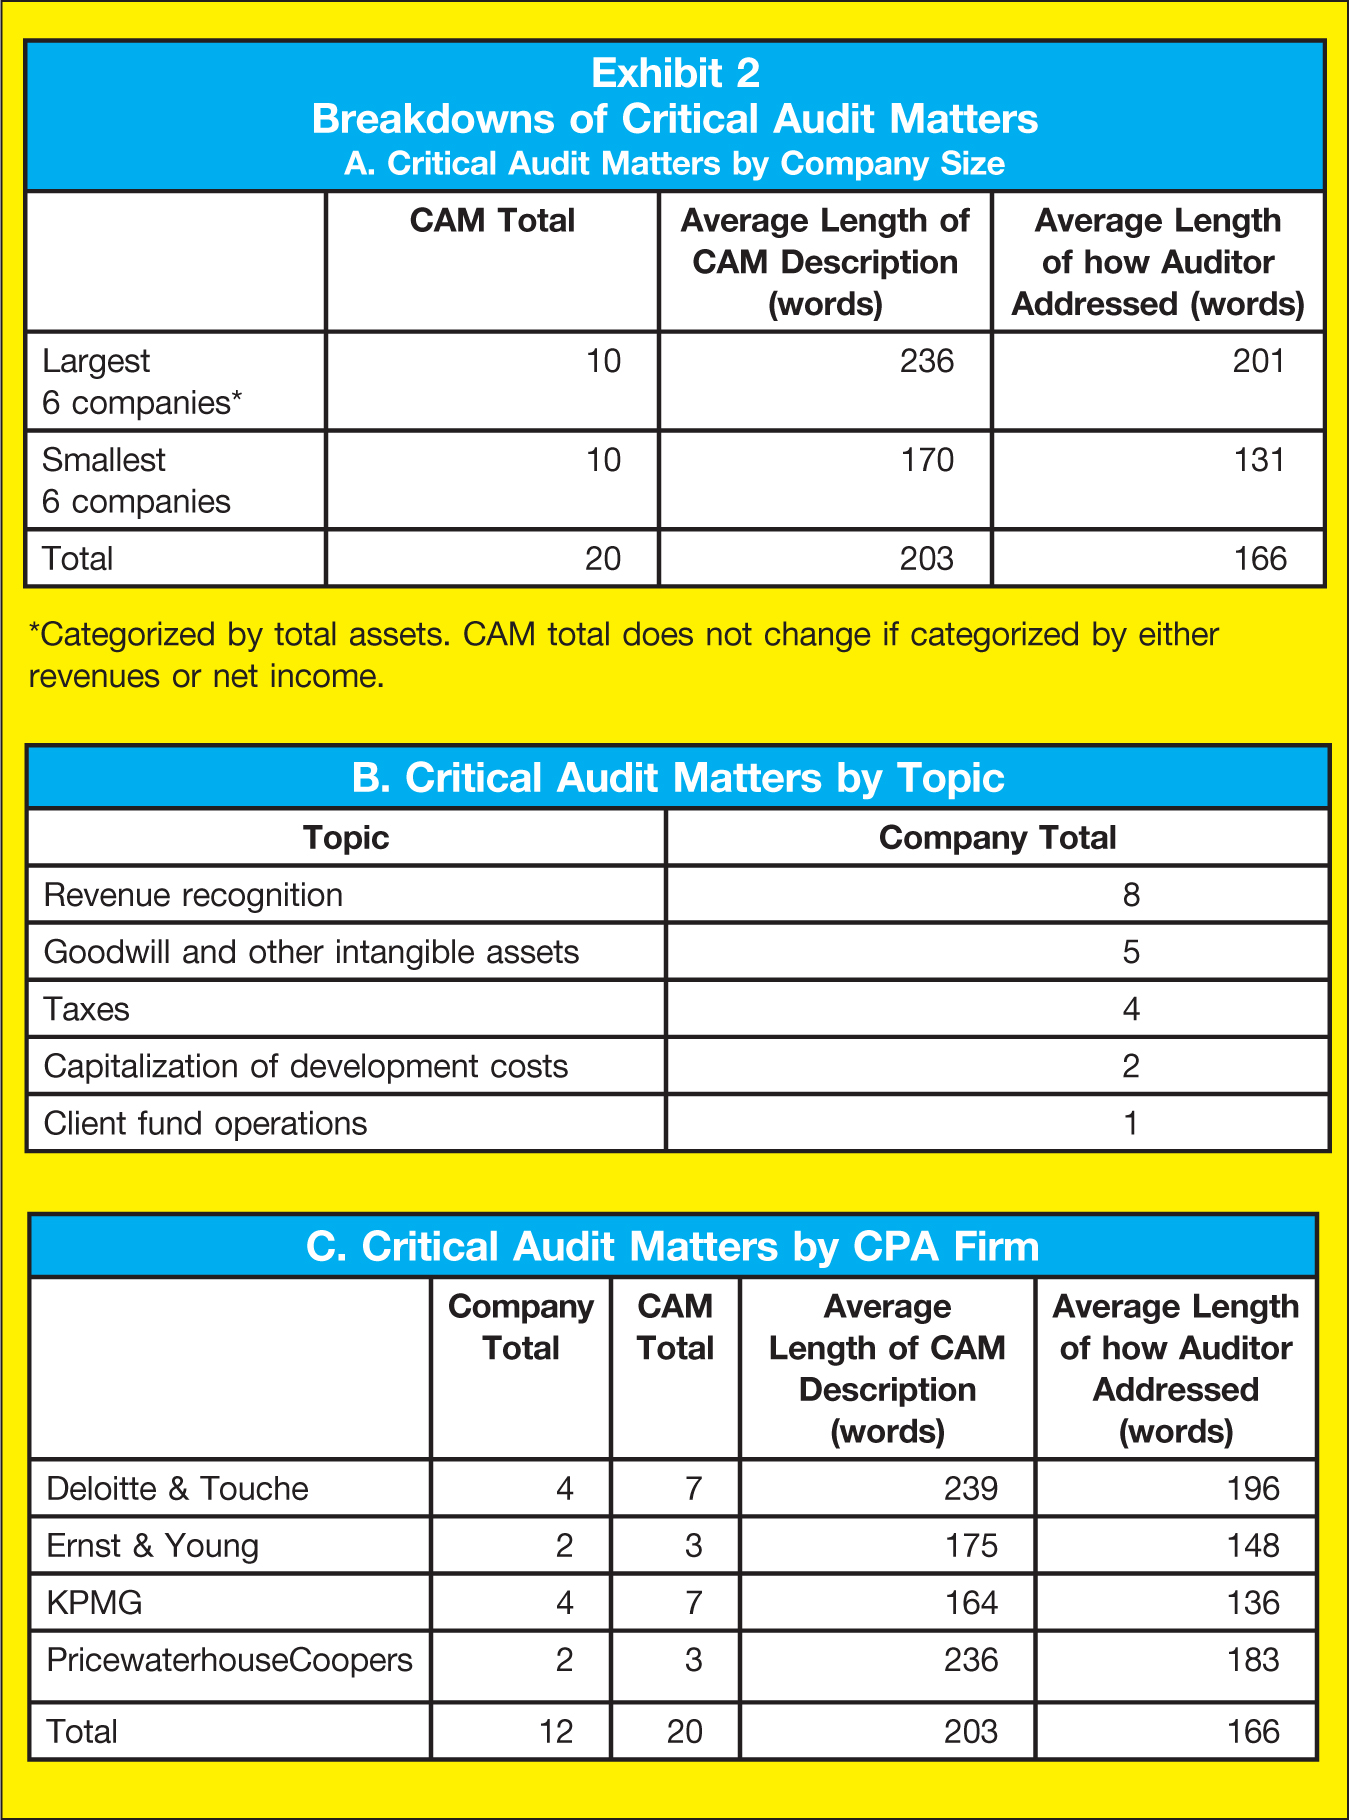 A. Critical Audit Matters by Company Size CAM Total; Average Length of CAM Description (words); Average Length of how Auditor Addressed (words) Largest 6 companies*; 10; 236; 201 Smallest 6 companies; 10; 170; 131 Total; 20; 203; 166 *Categorized by total assets. CAM total does not change if categorized by either revenues or net income. B. Critical Audit Matters by Topic Topic; Company Total Revenue recognition; 8 Goodwill and other intangible assets; 5 Taxes; 4 Capitalization of development costs; 2 Client fund operations; 1 C. Critical Audit Matters by CPA Firm Company Total; CAM Total; Average Length of CAM Description (words); Average Length of how Auditor Addressed (words) Deloitte & Touche; 4; 7; 239; 196 Ernst & Young; 2; 3; 175; 148 KPMG; 4; 7; 164; 136 PricewaterhouseCoopers; 2; 3; 236; 183 Total; 12; 20; 203; 166